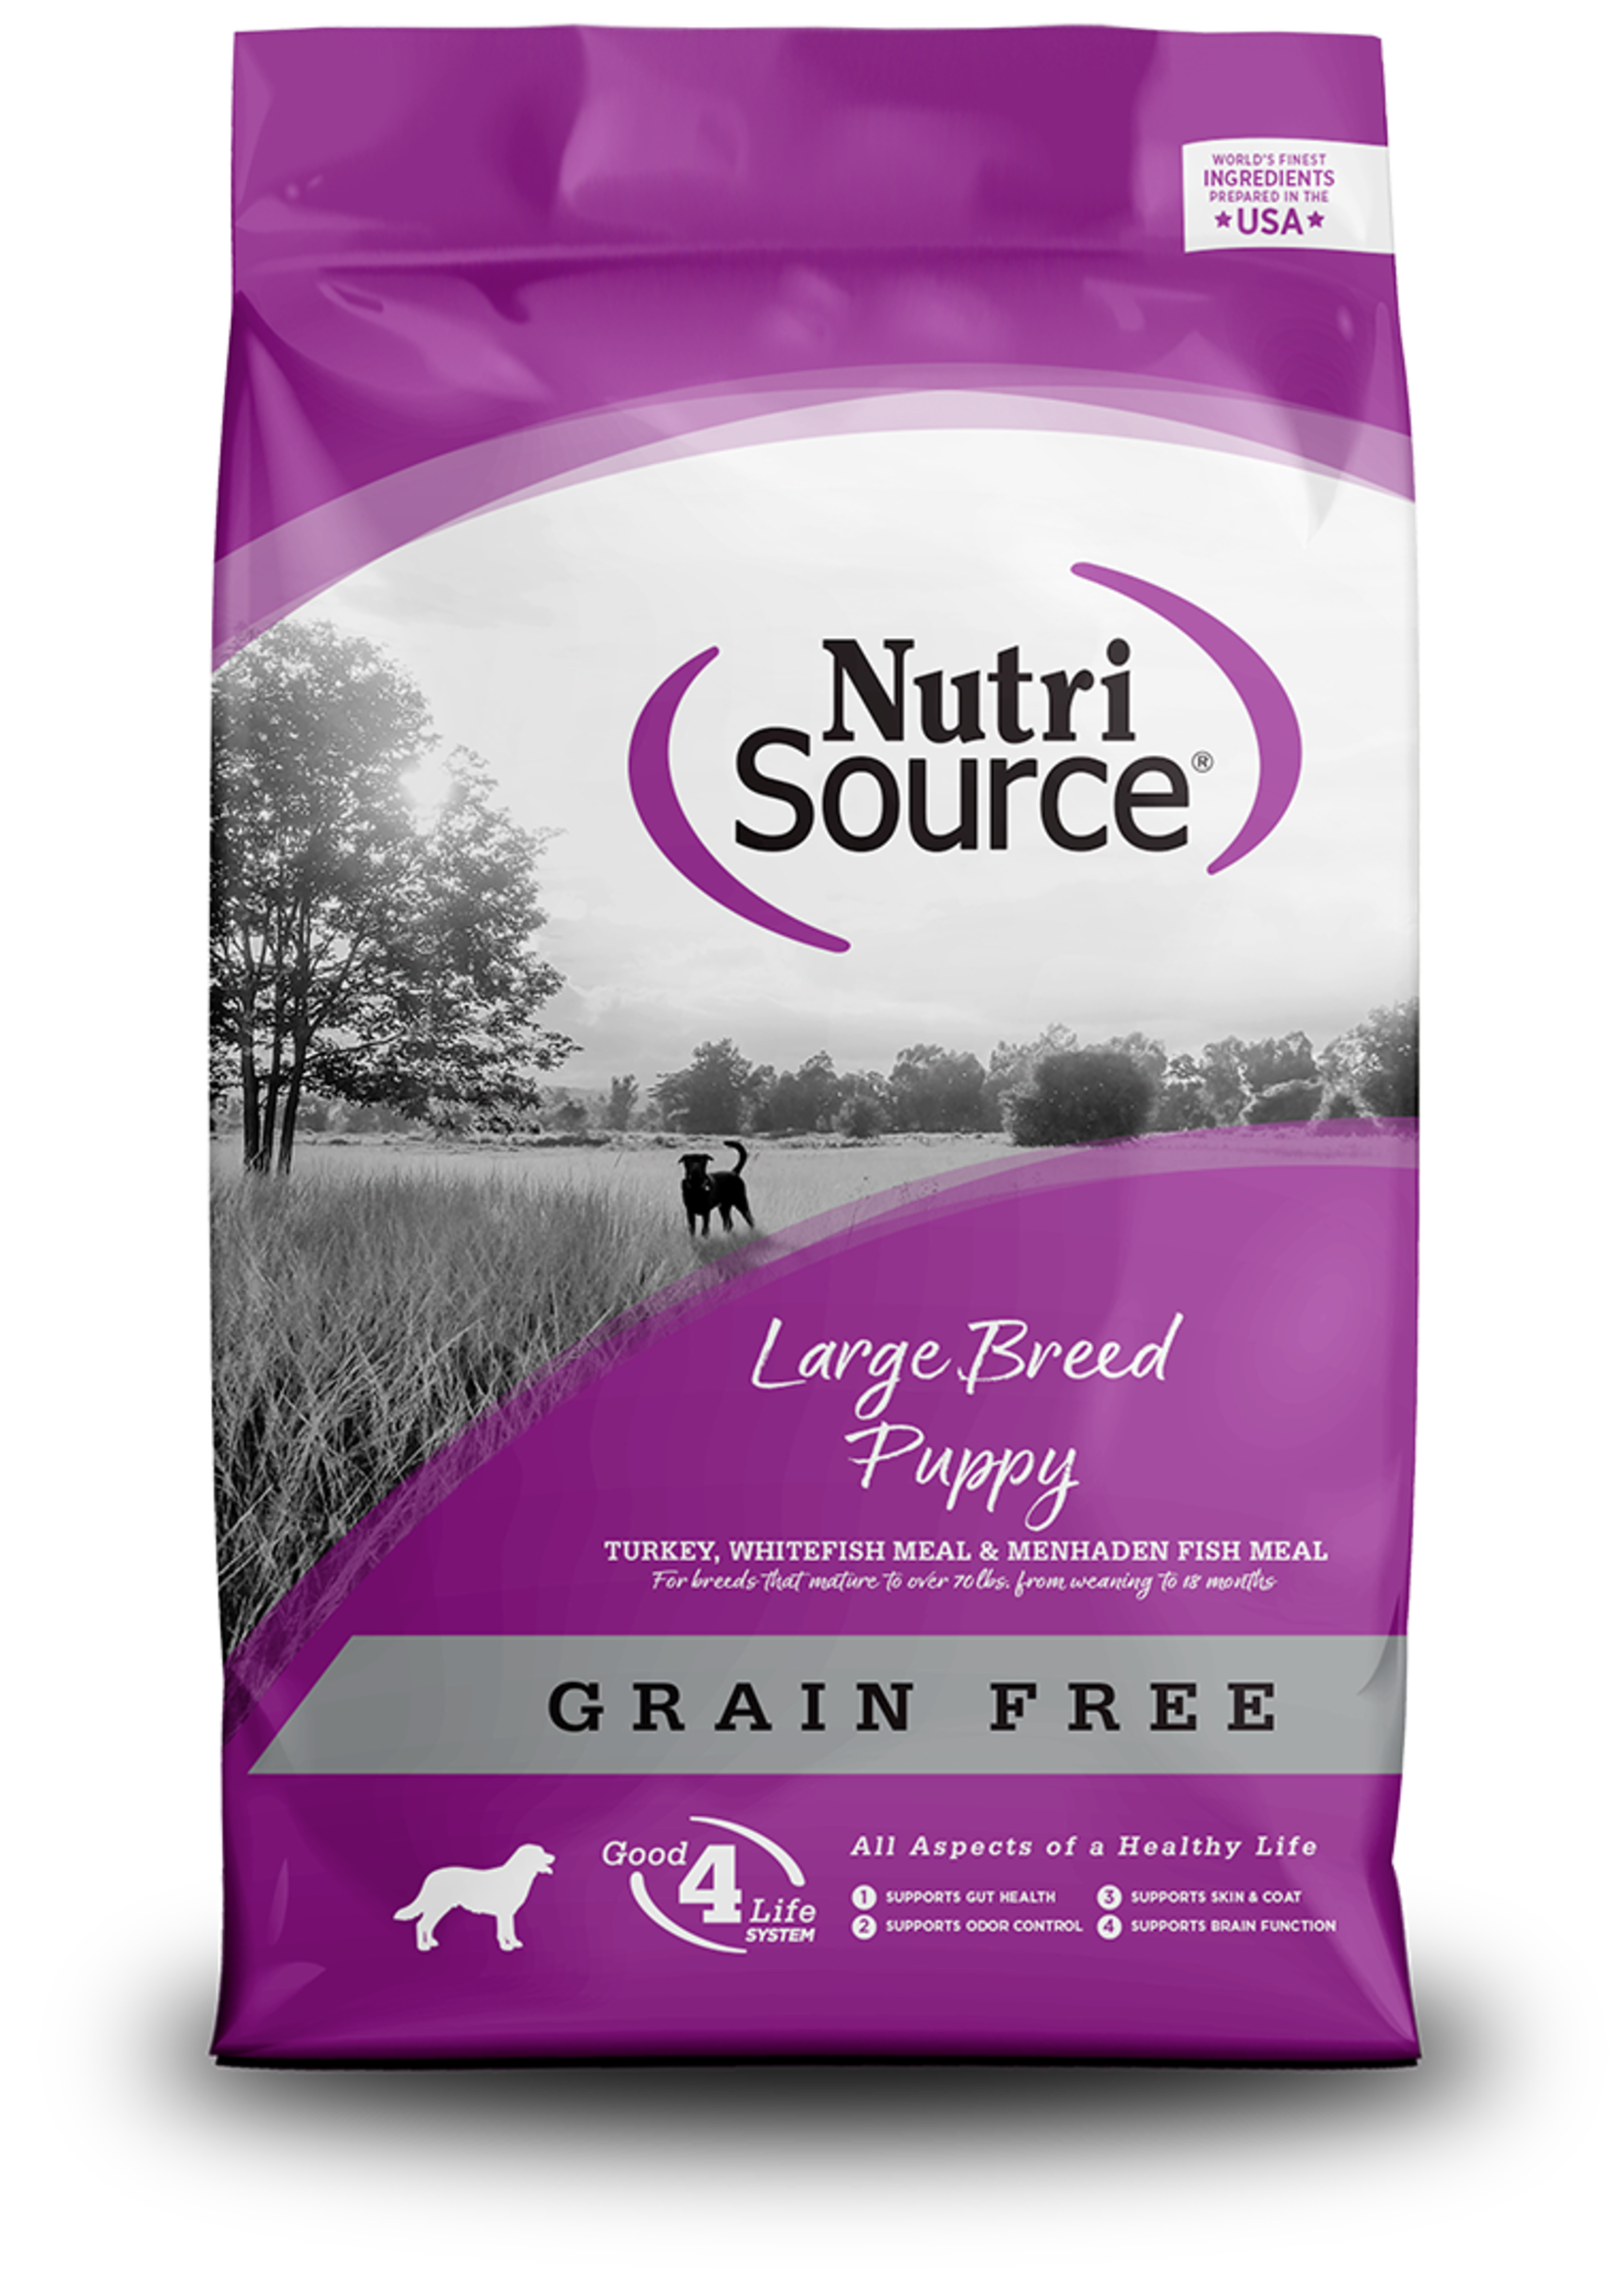 Nutrisource Nutrisource Grain-Free Large Breed Puppy Dry Dog Food 5lbs